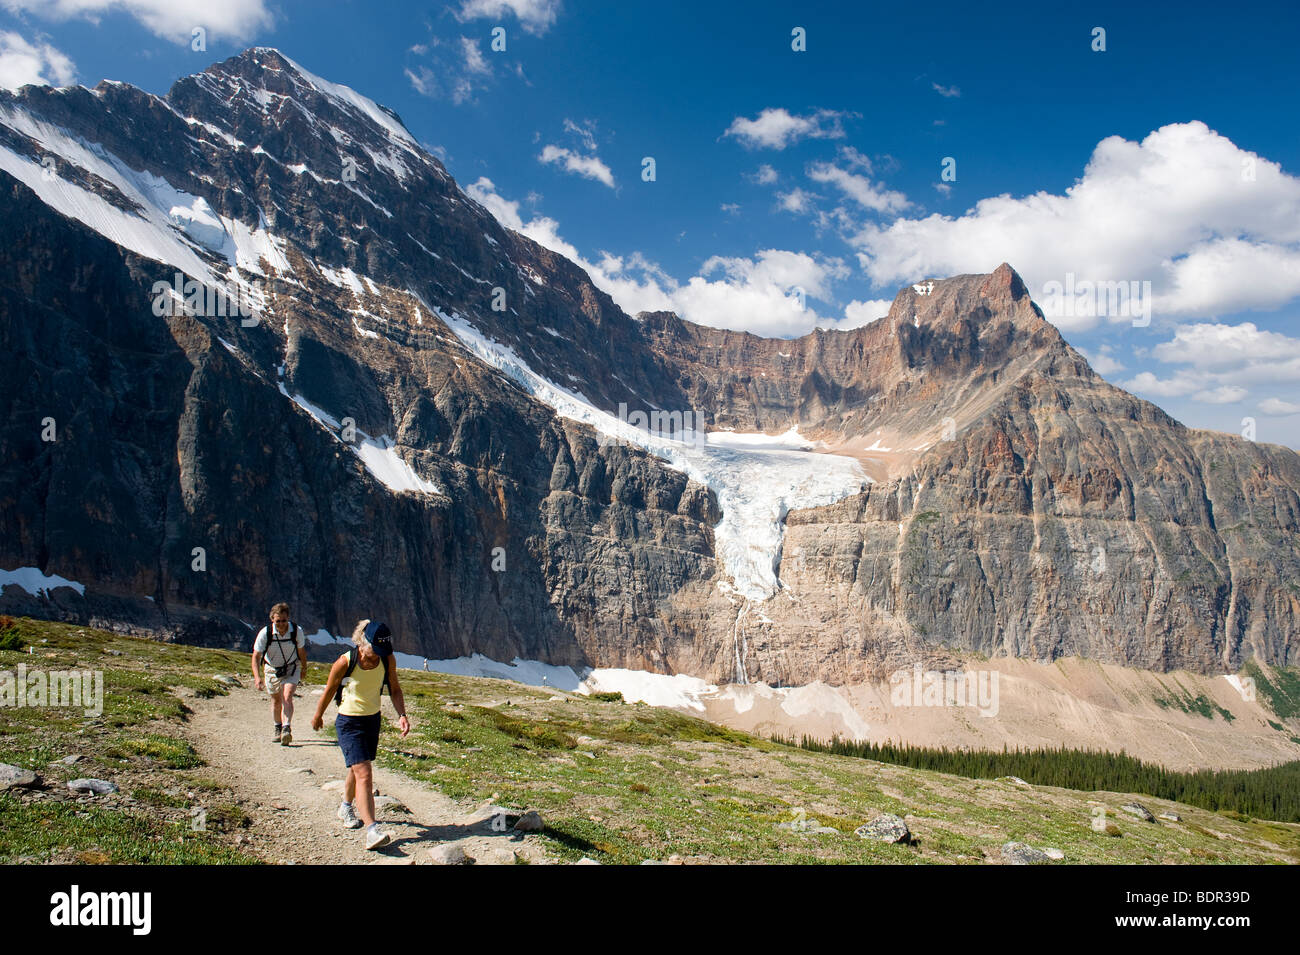 Hikers on the Cavell Meadows Trail with Mount Edith Cavell and the Angel Glacier, Jasper National Park, Alberta, - Stock Image